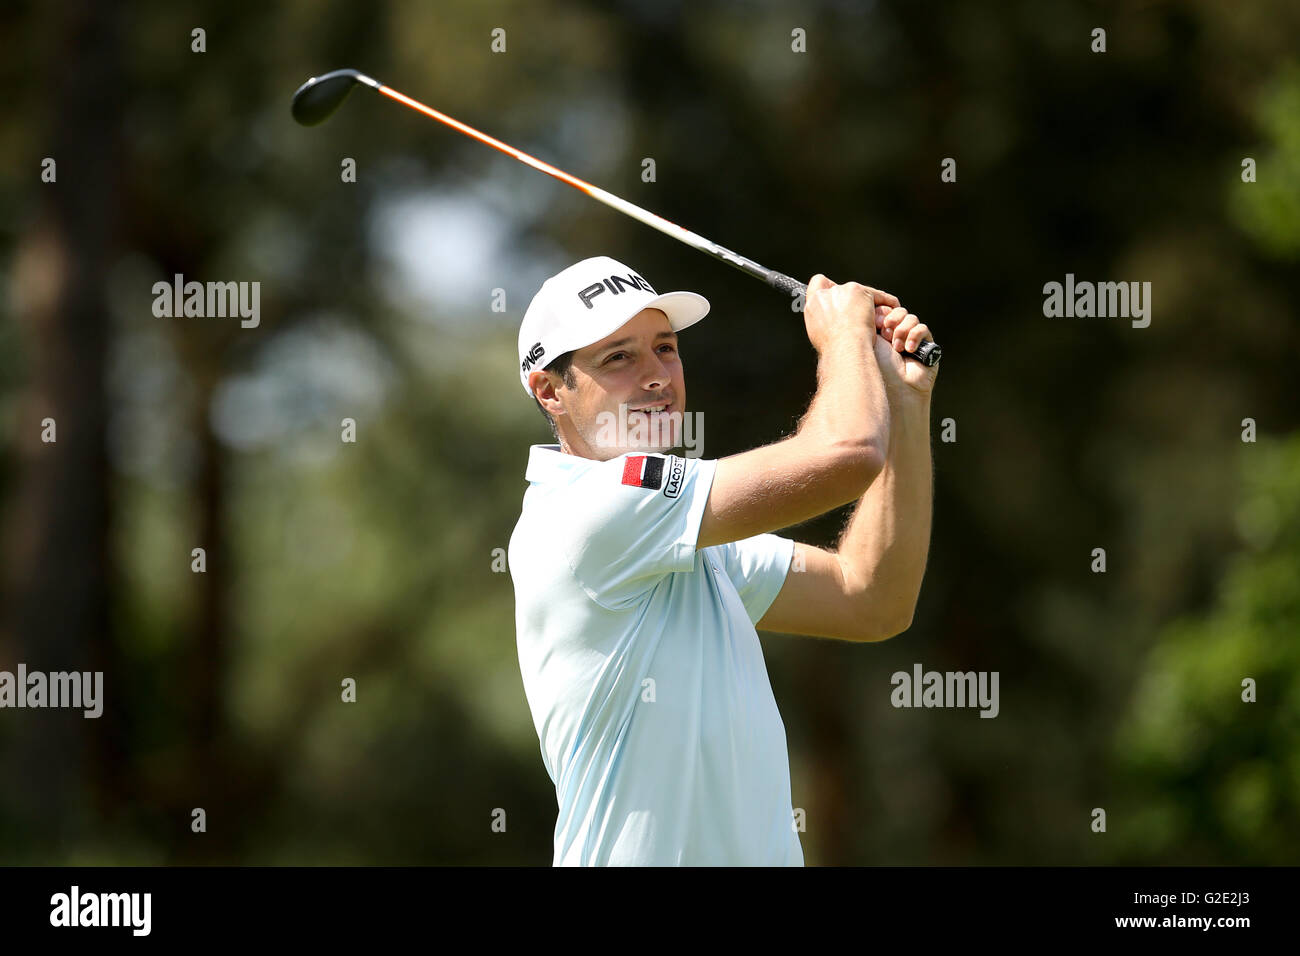 France's Julien Quesne tees off on the 8th hole during day four of the BMW PGA Championship at Wentworth Club, - Stock Image